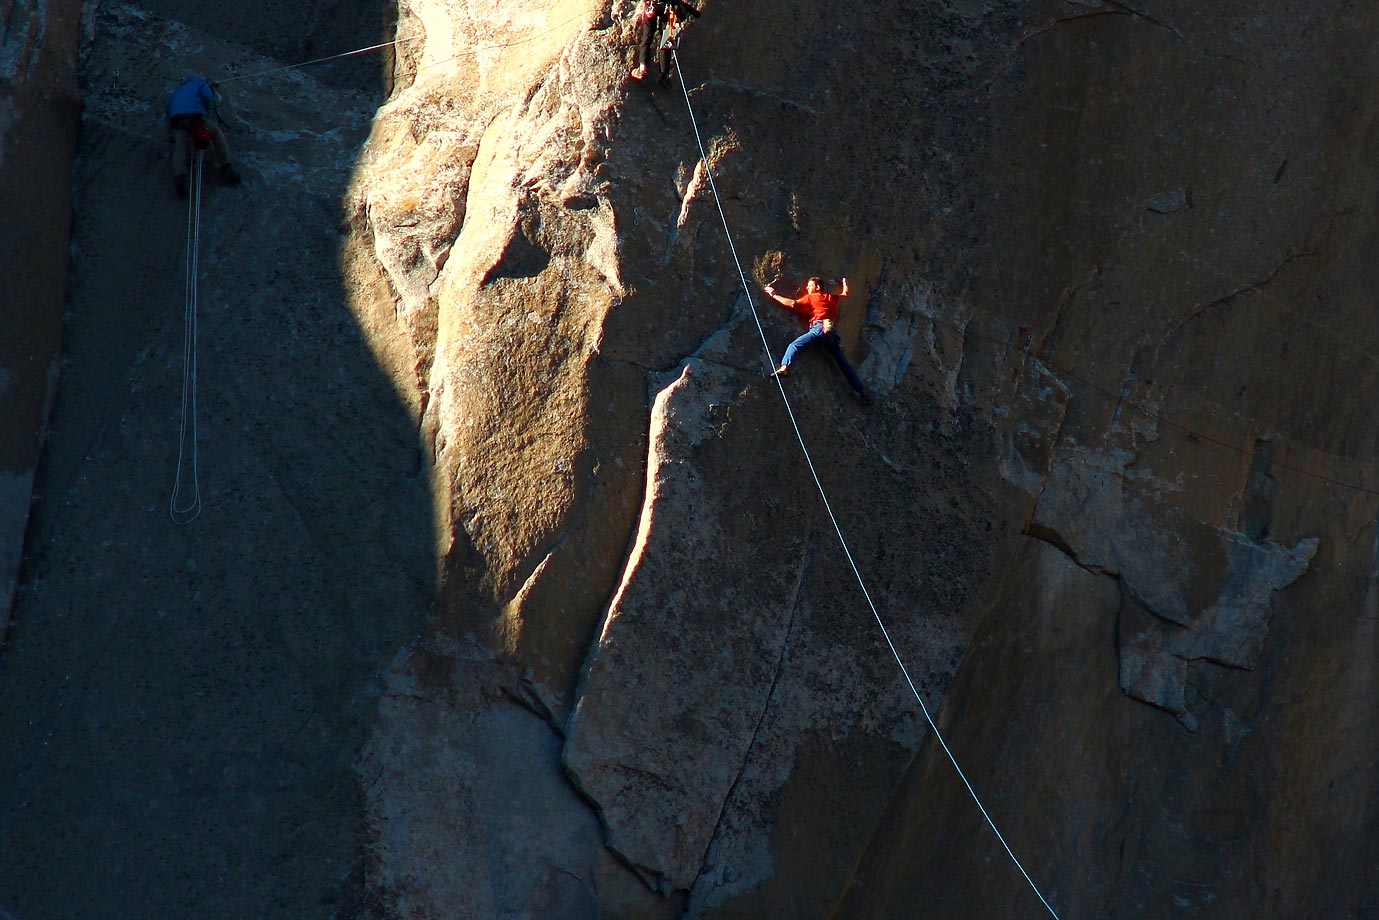 Tommy Caldwell working Pitch 15.